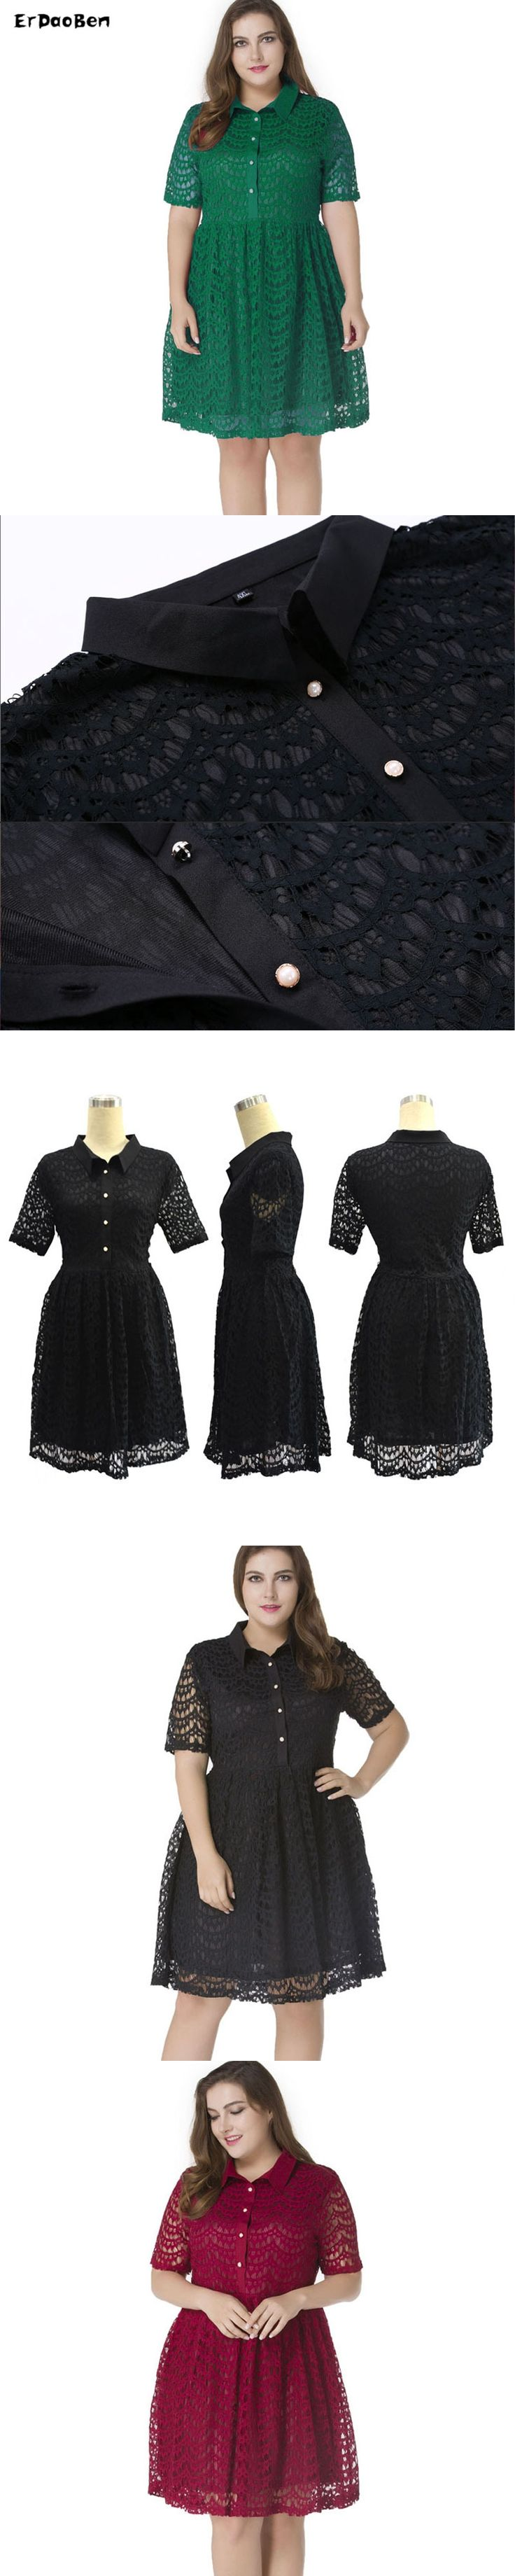 Women Black green Lace Hollow Mid Dress Autumn Elegant Casual A Line Slim Sexy Plus Size M-7XL Dresses Ropa Mujer Vestidos MM061